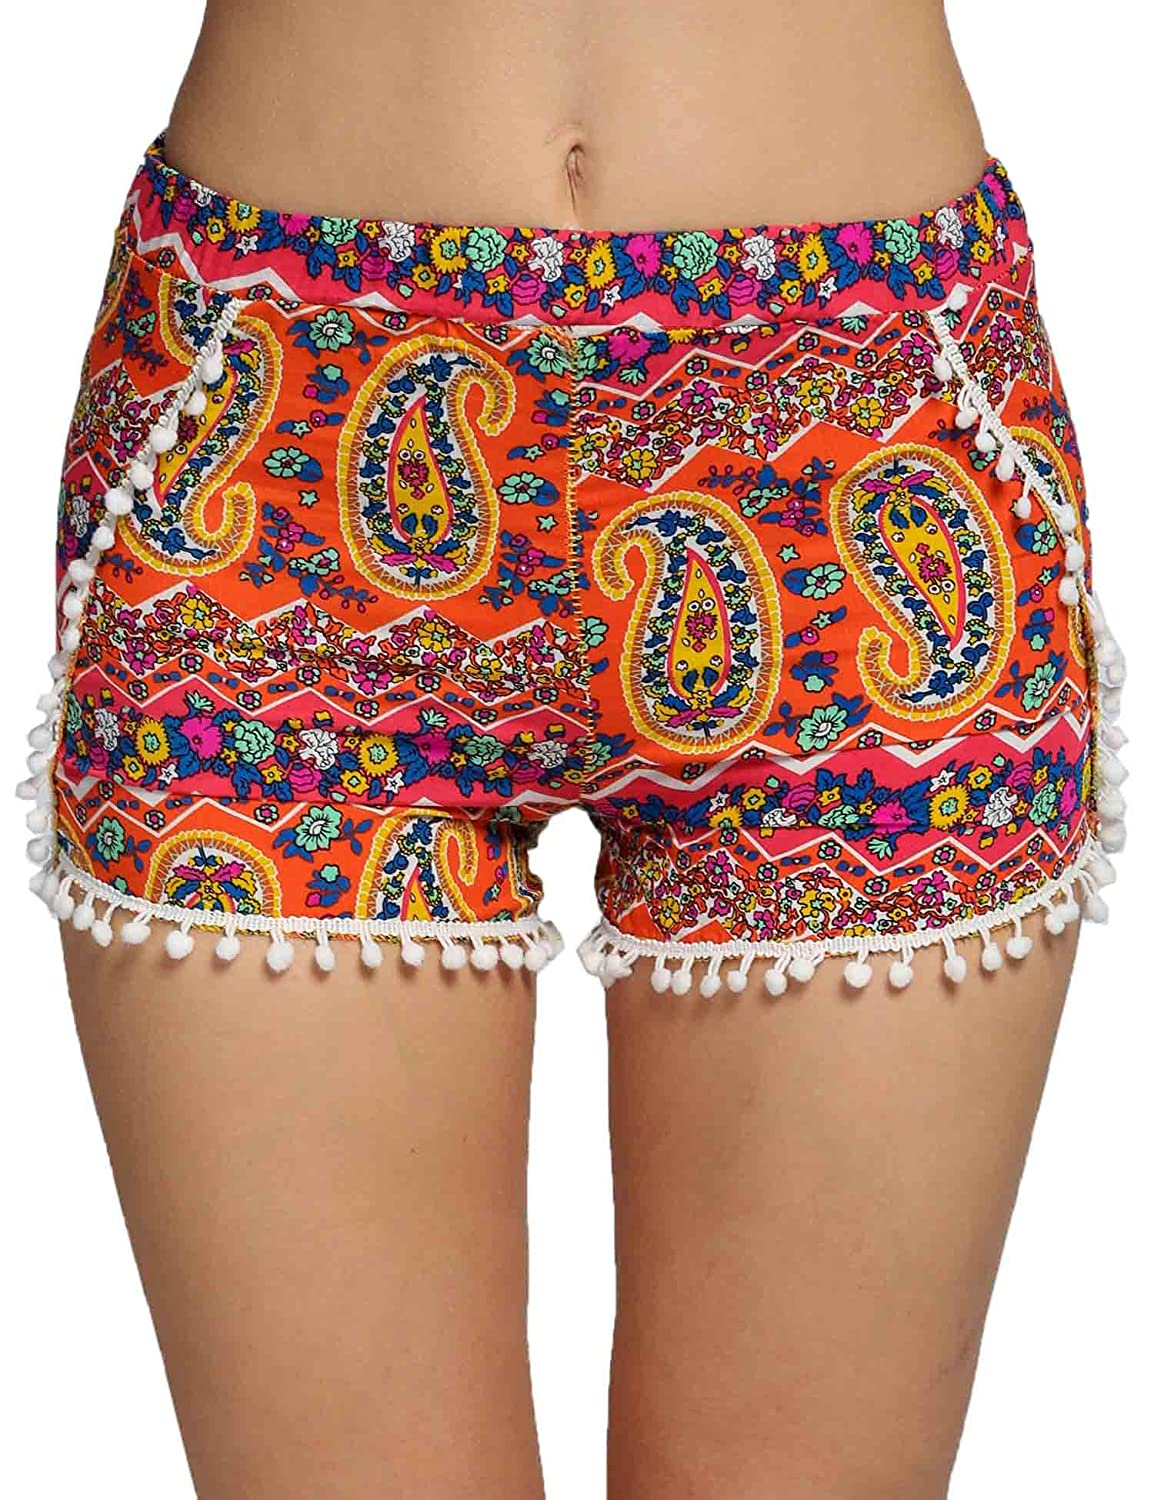 2d8a4782a3a2 chic Youzee Women High Waist Print Elastic Tassel Decor Casual Beach Mini  Shorts